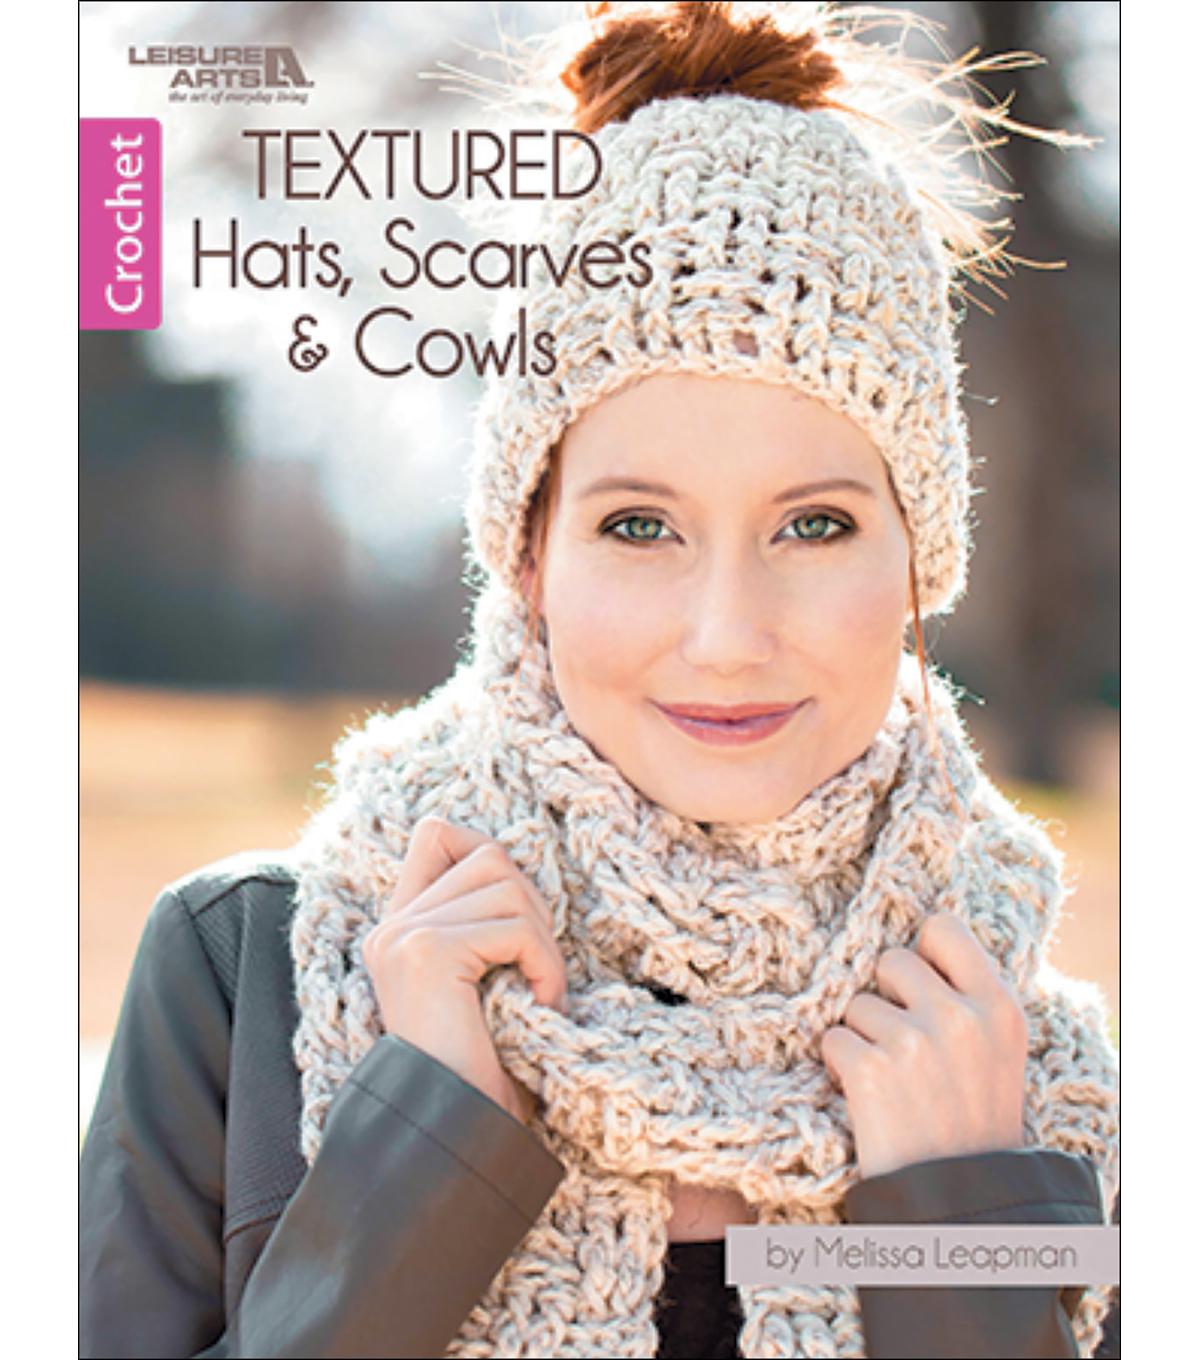 Textured Hats Scarves & Cowls Crochet Book